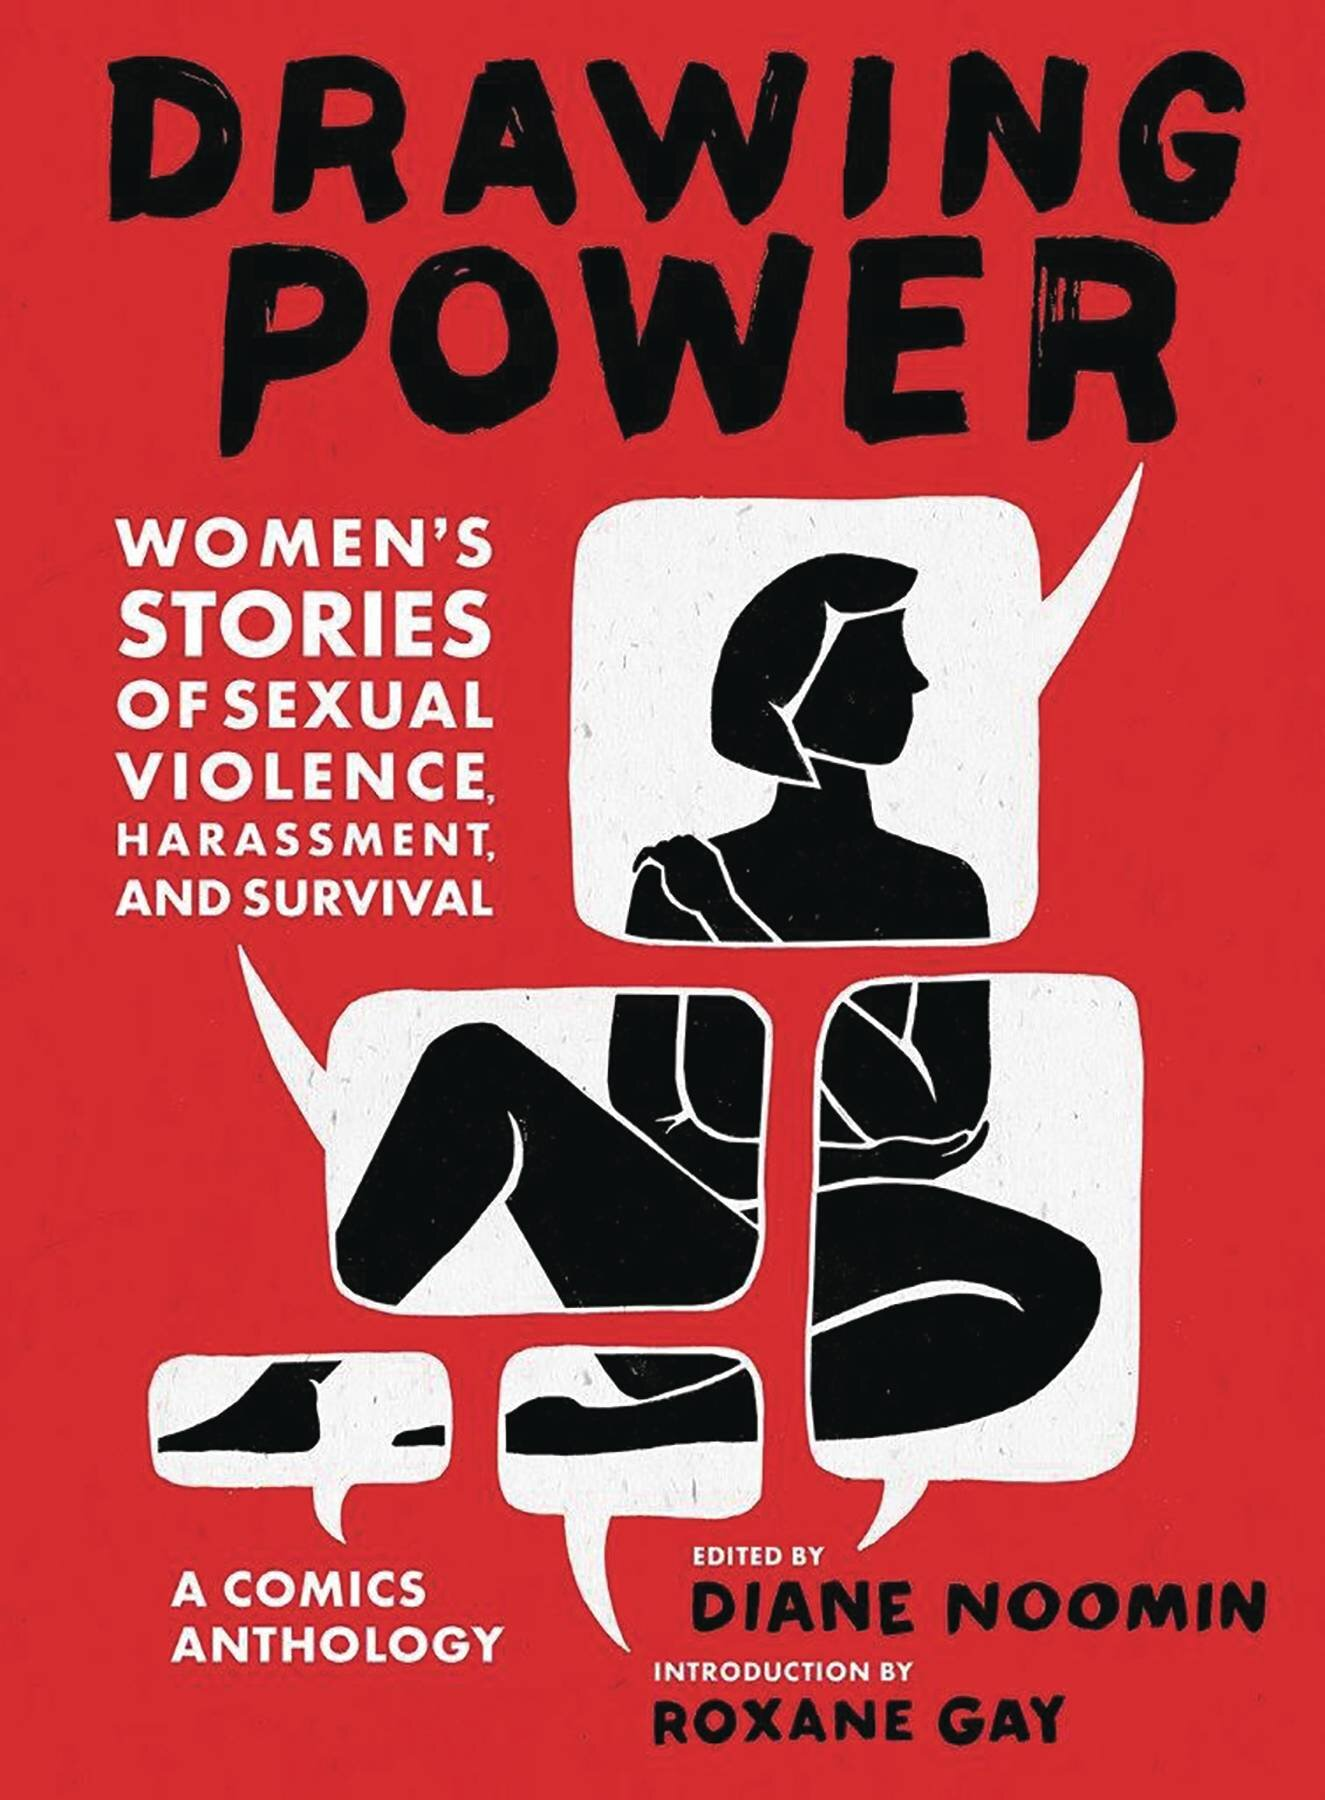 DRAWING POWER WOMENS STORIES SEXUAL VIOLENCE HC.jpg